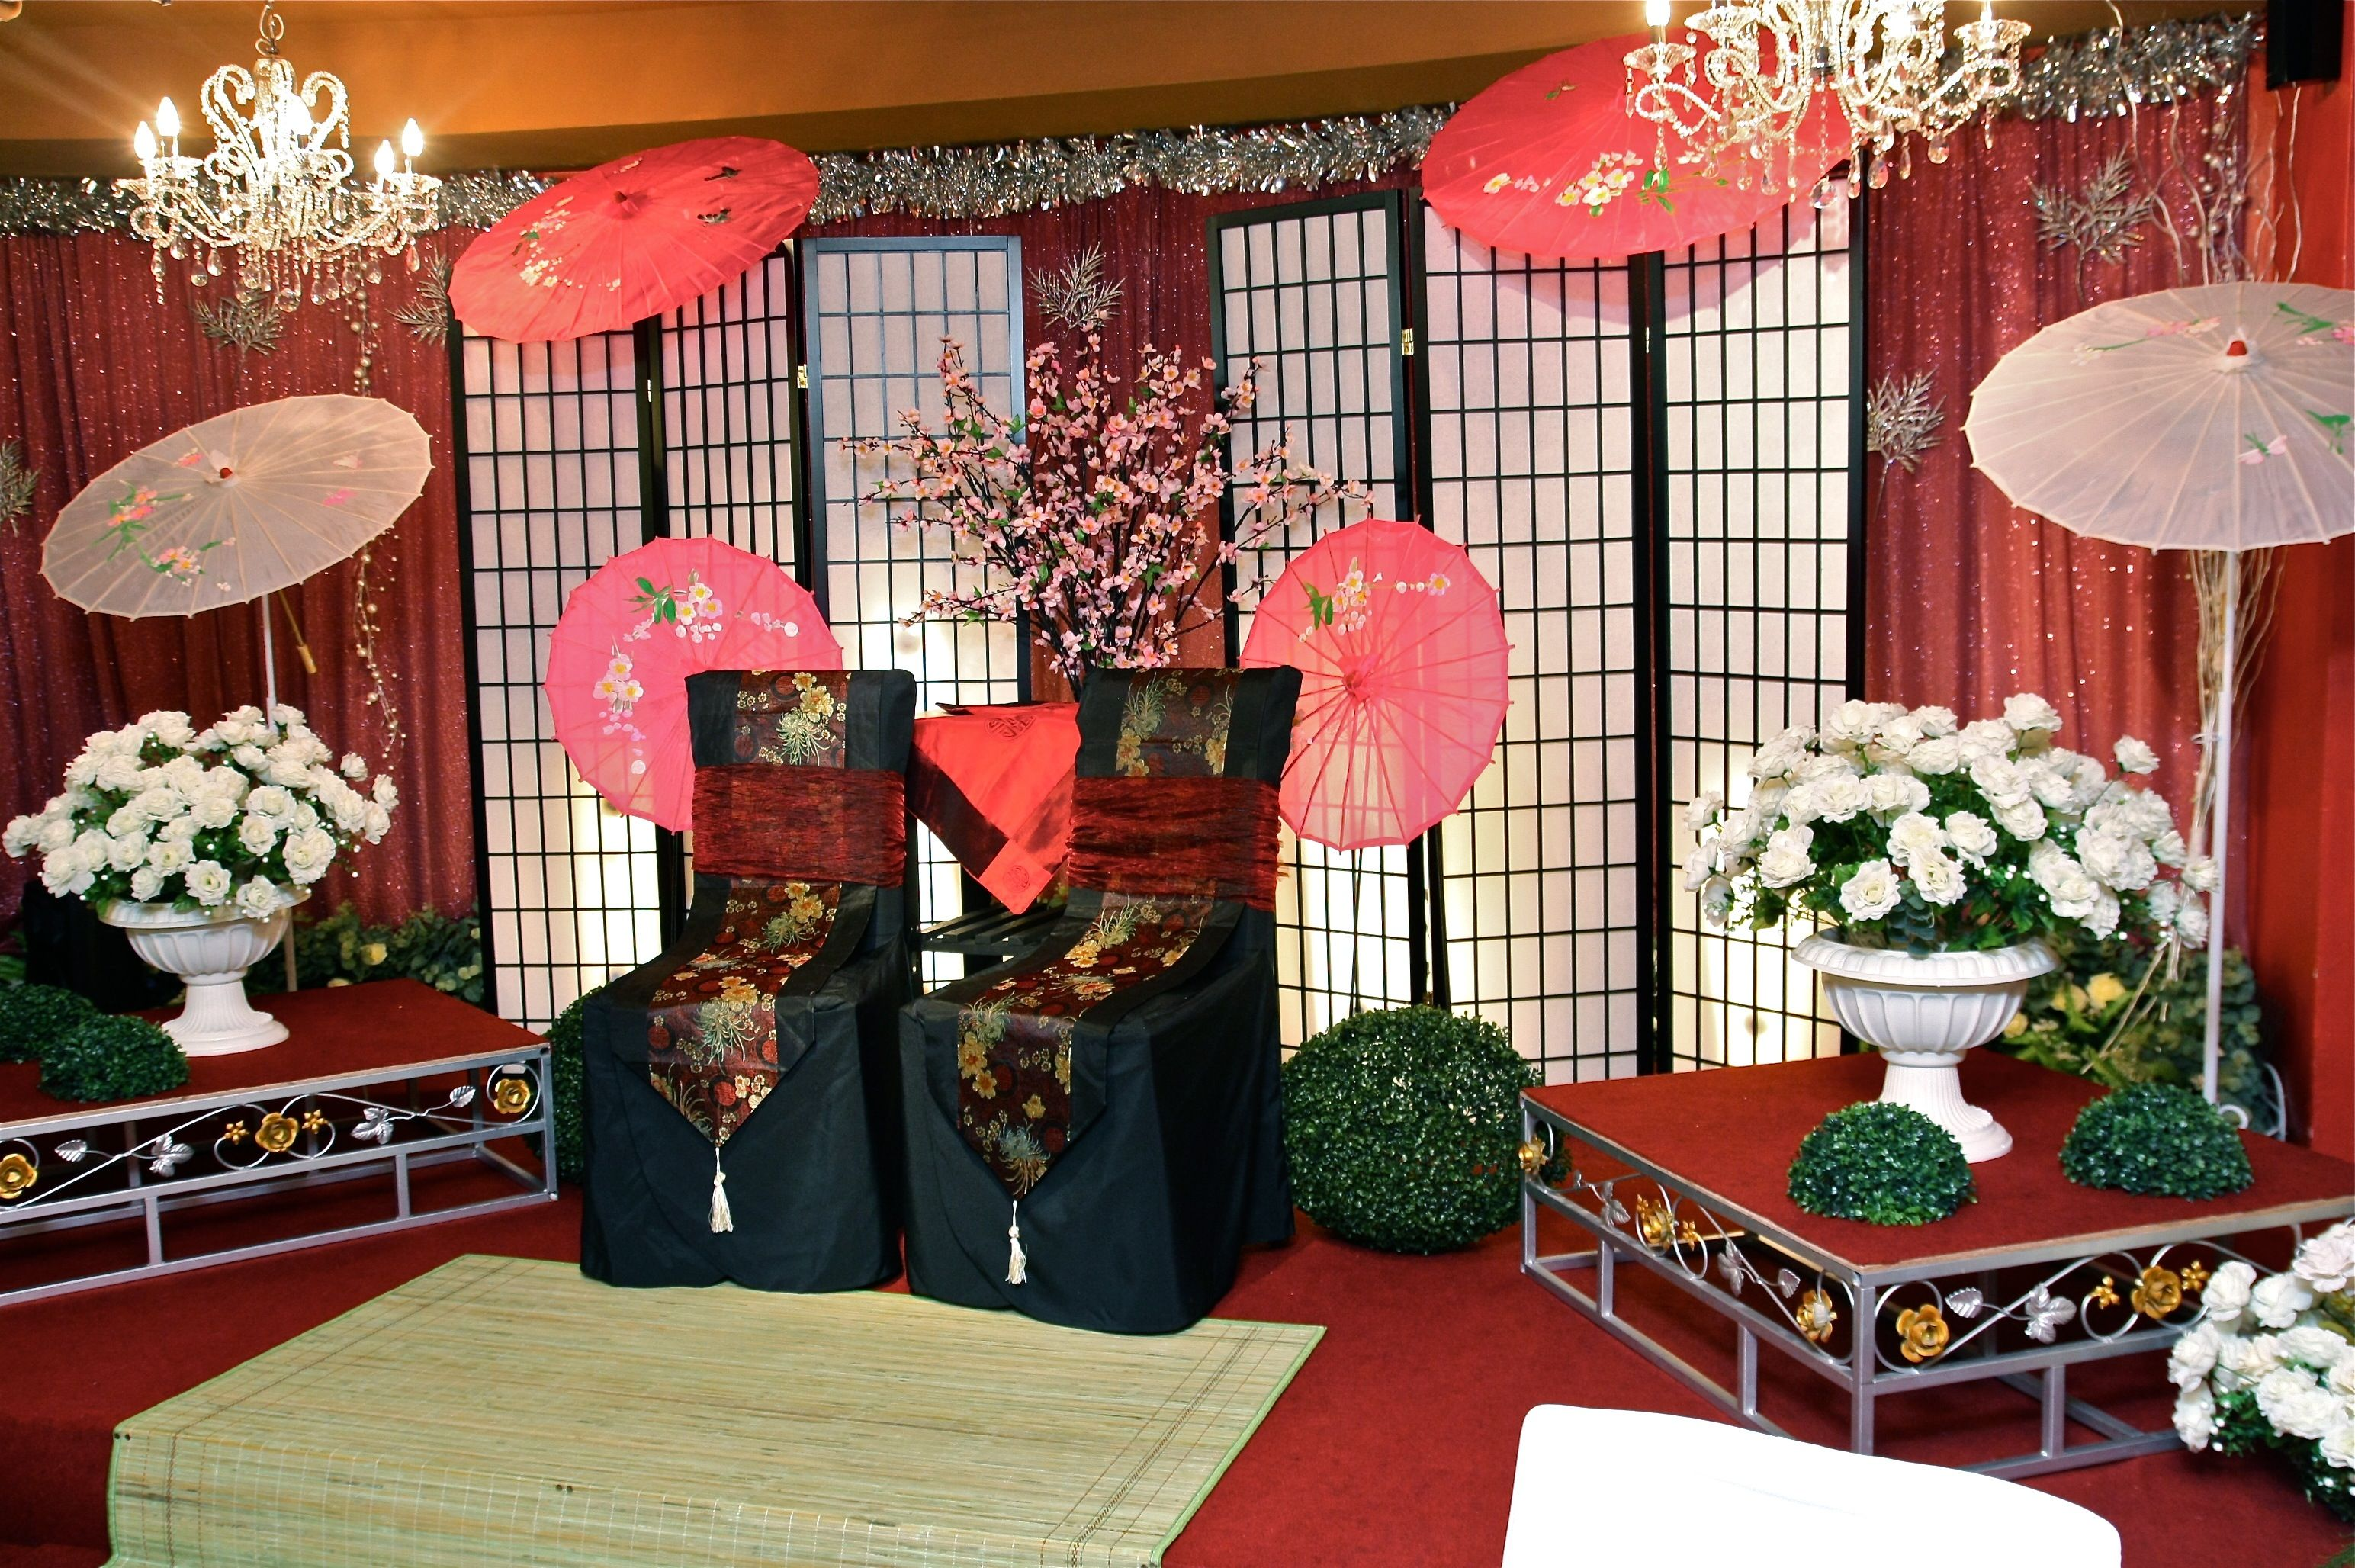 Japanese wedding weddings pinterest reception weddings and japanese wedding junglespirit Choice Image